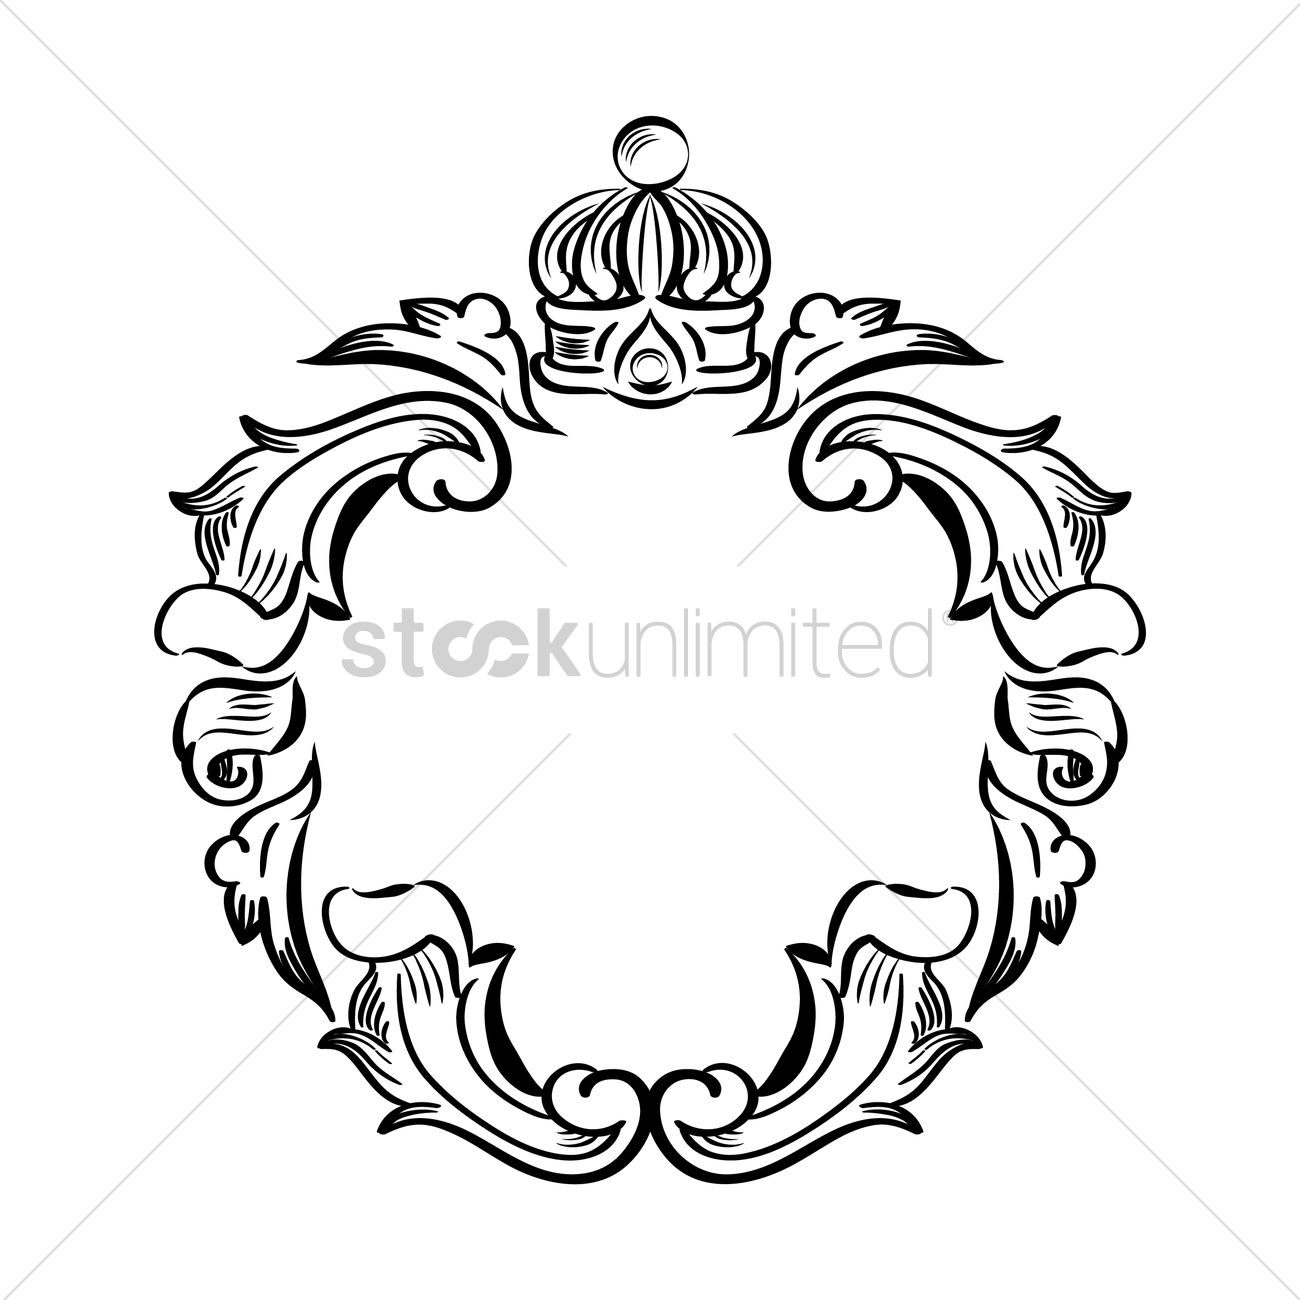 Classic decorative frame Vector Image - 1606672   StockUnlimited